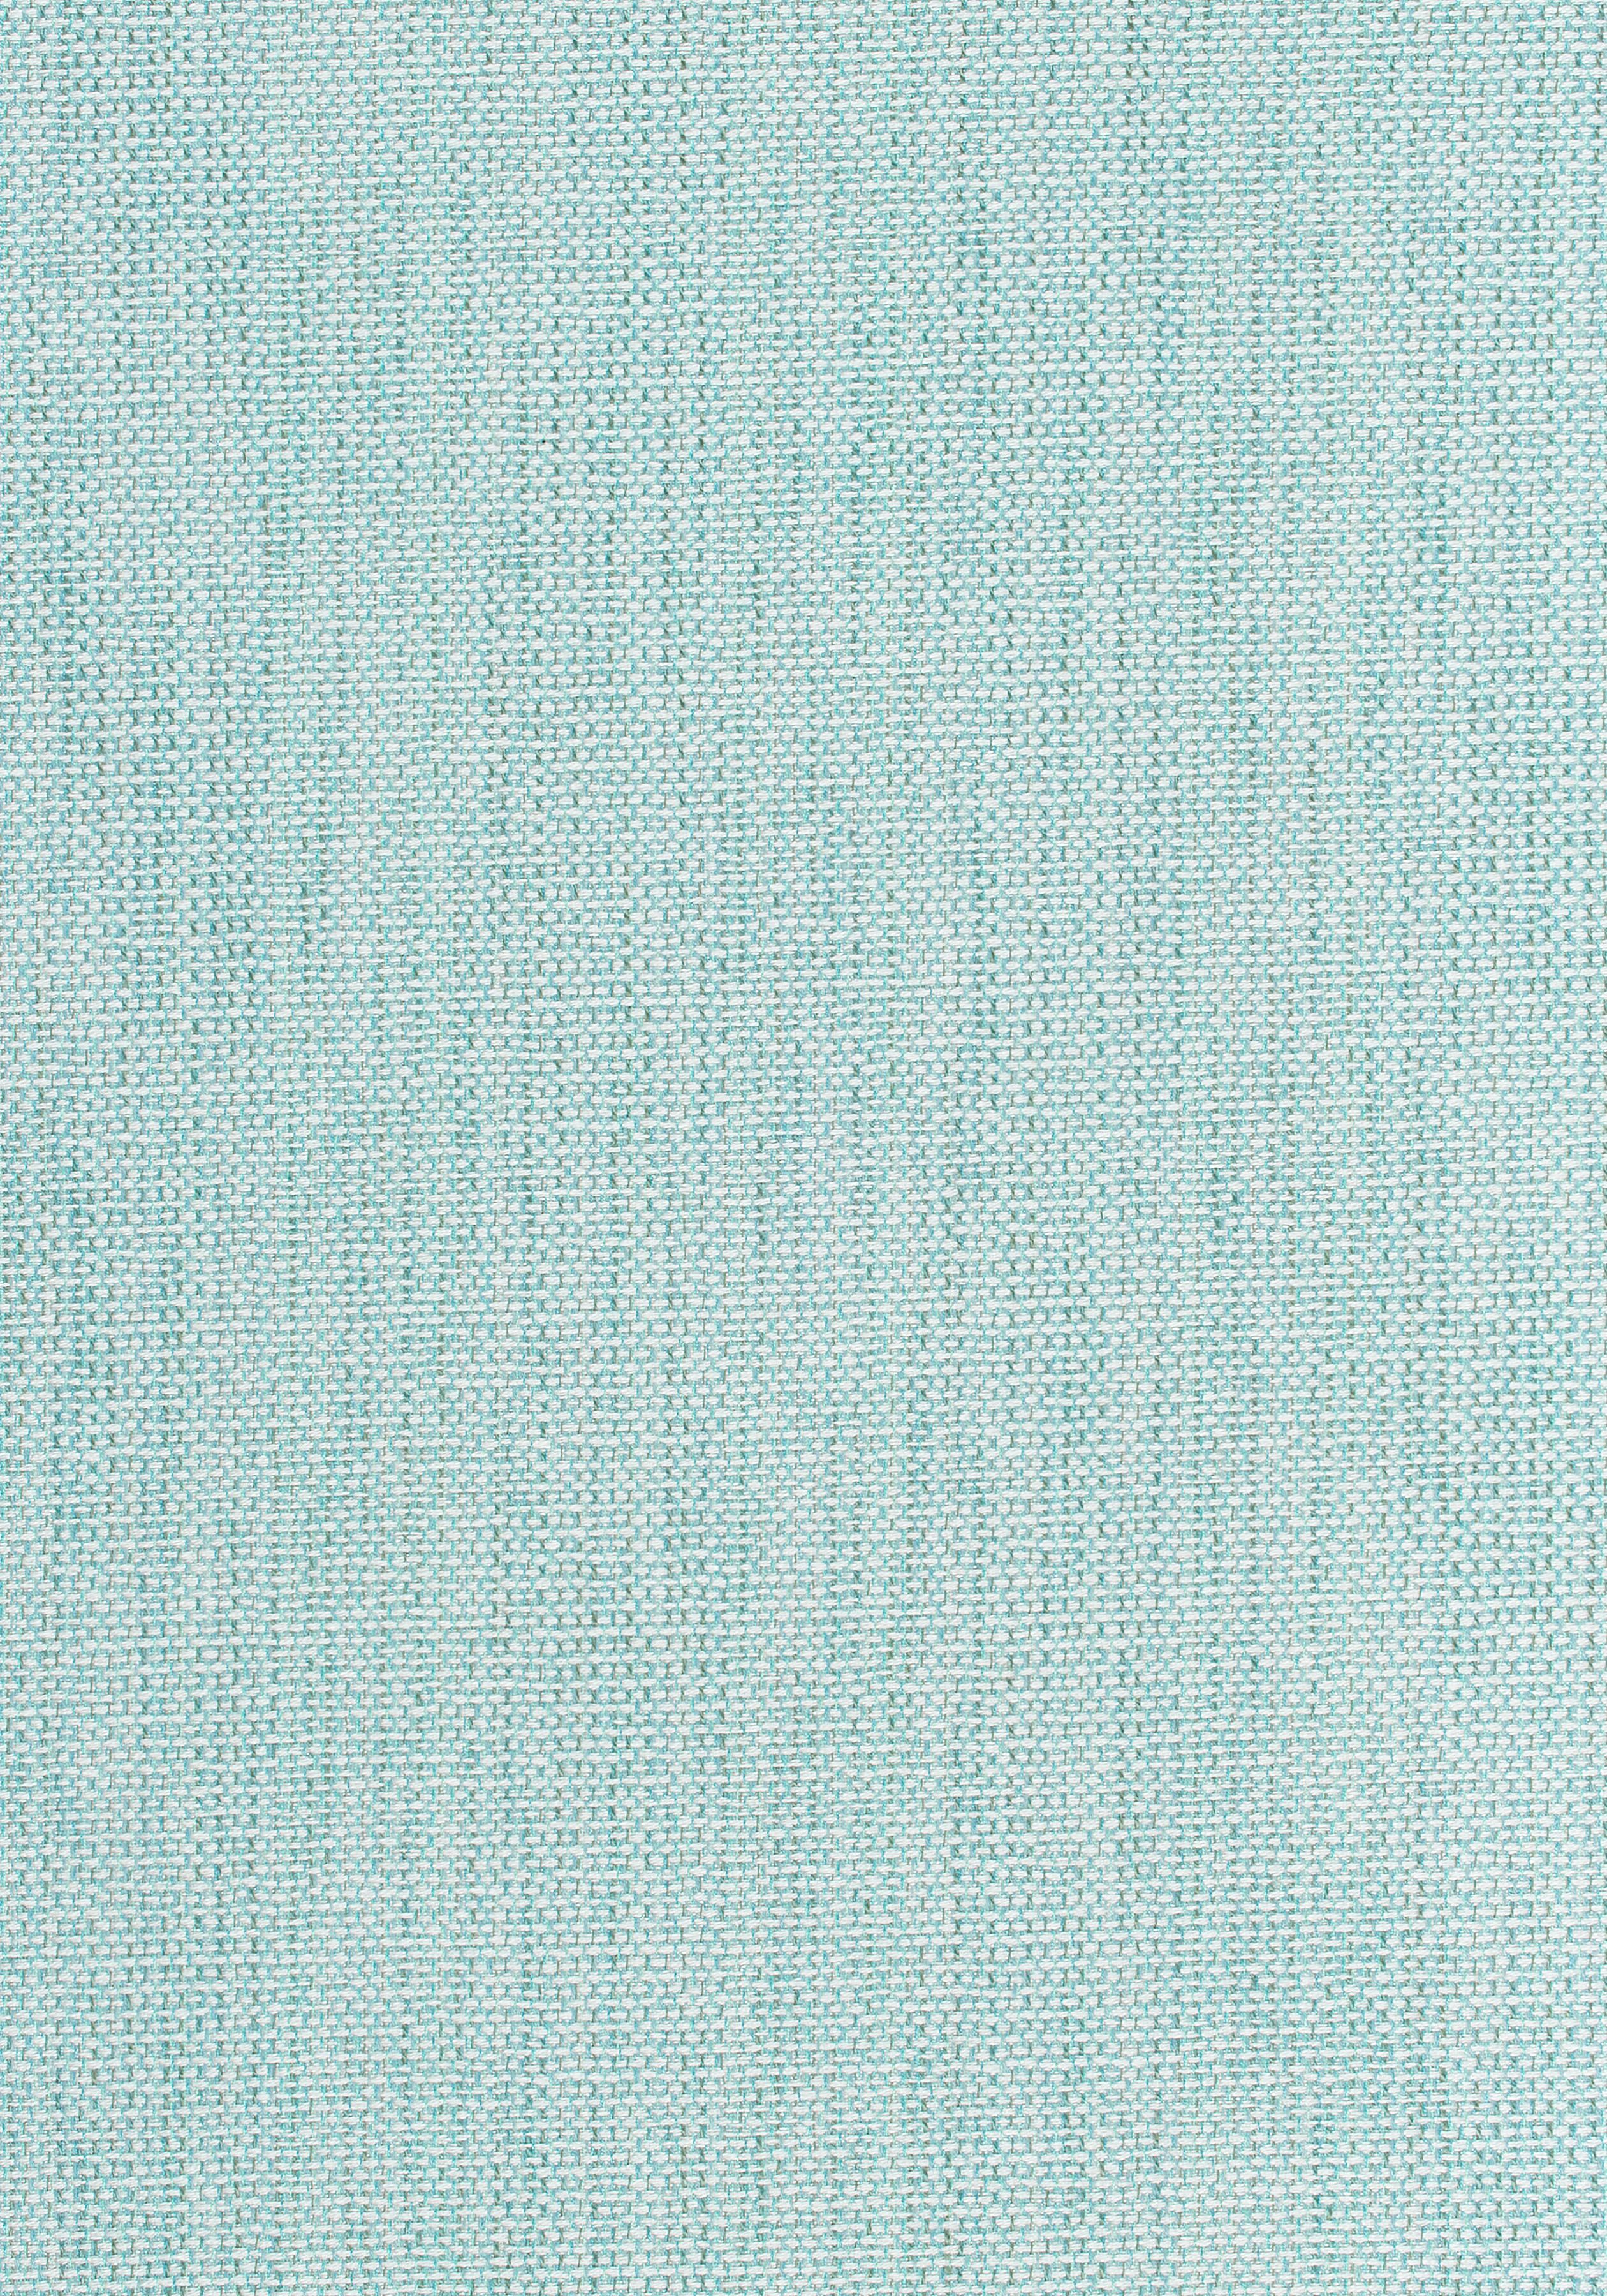 WINDSONG, Aqua, W80577, Collection Oasis from Thibaut